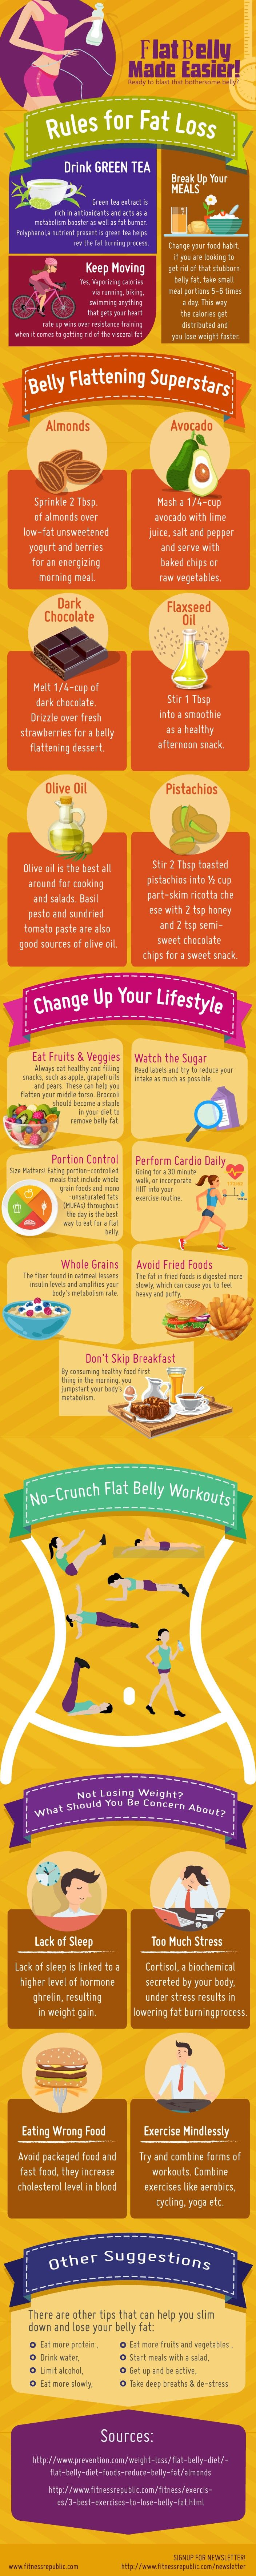 Bloated Stomach And How To Fix It   The WHOot